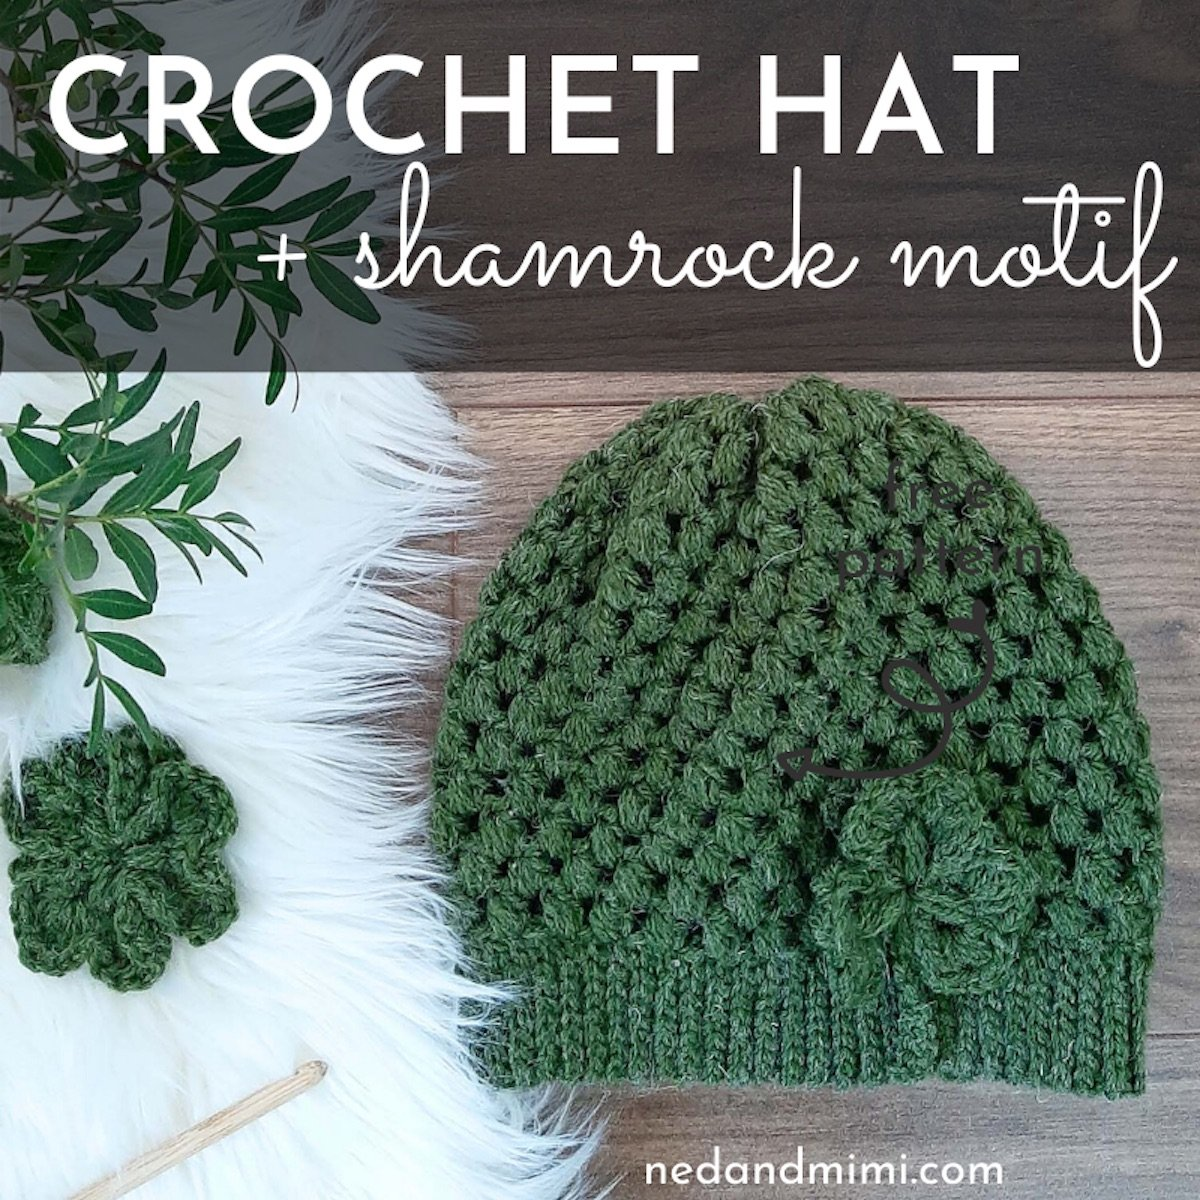 shamrock-hat-sq